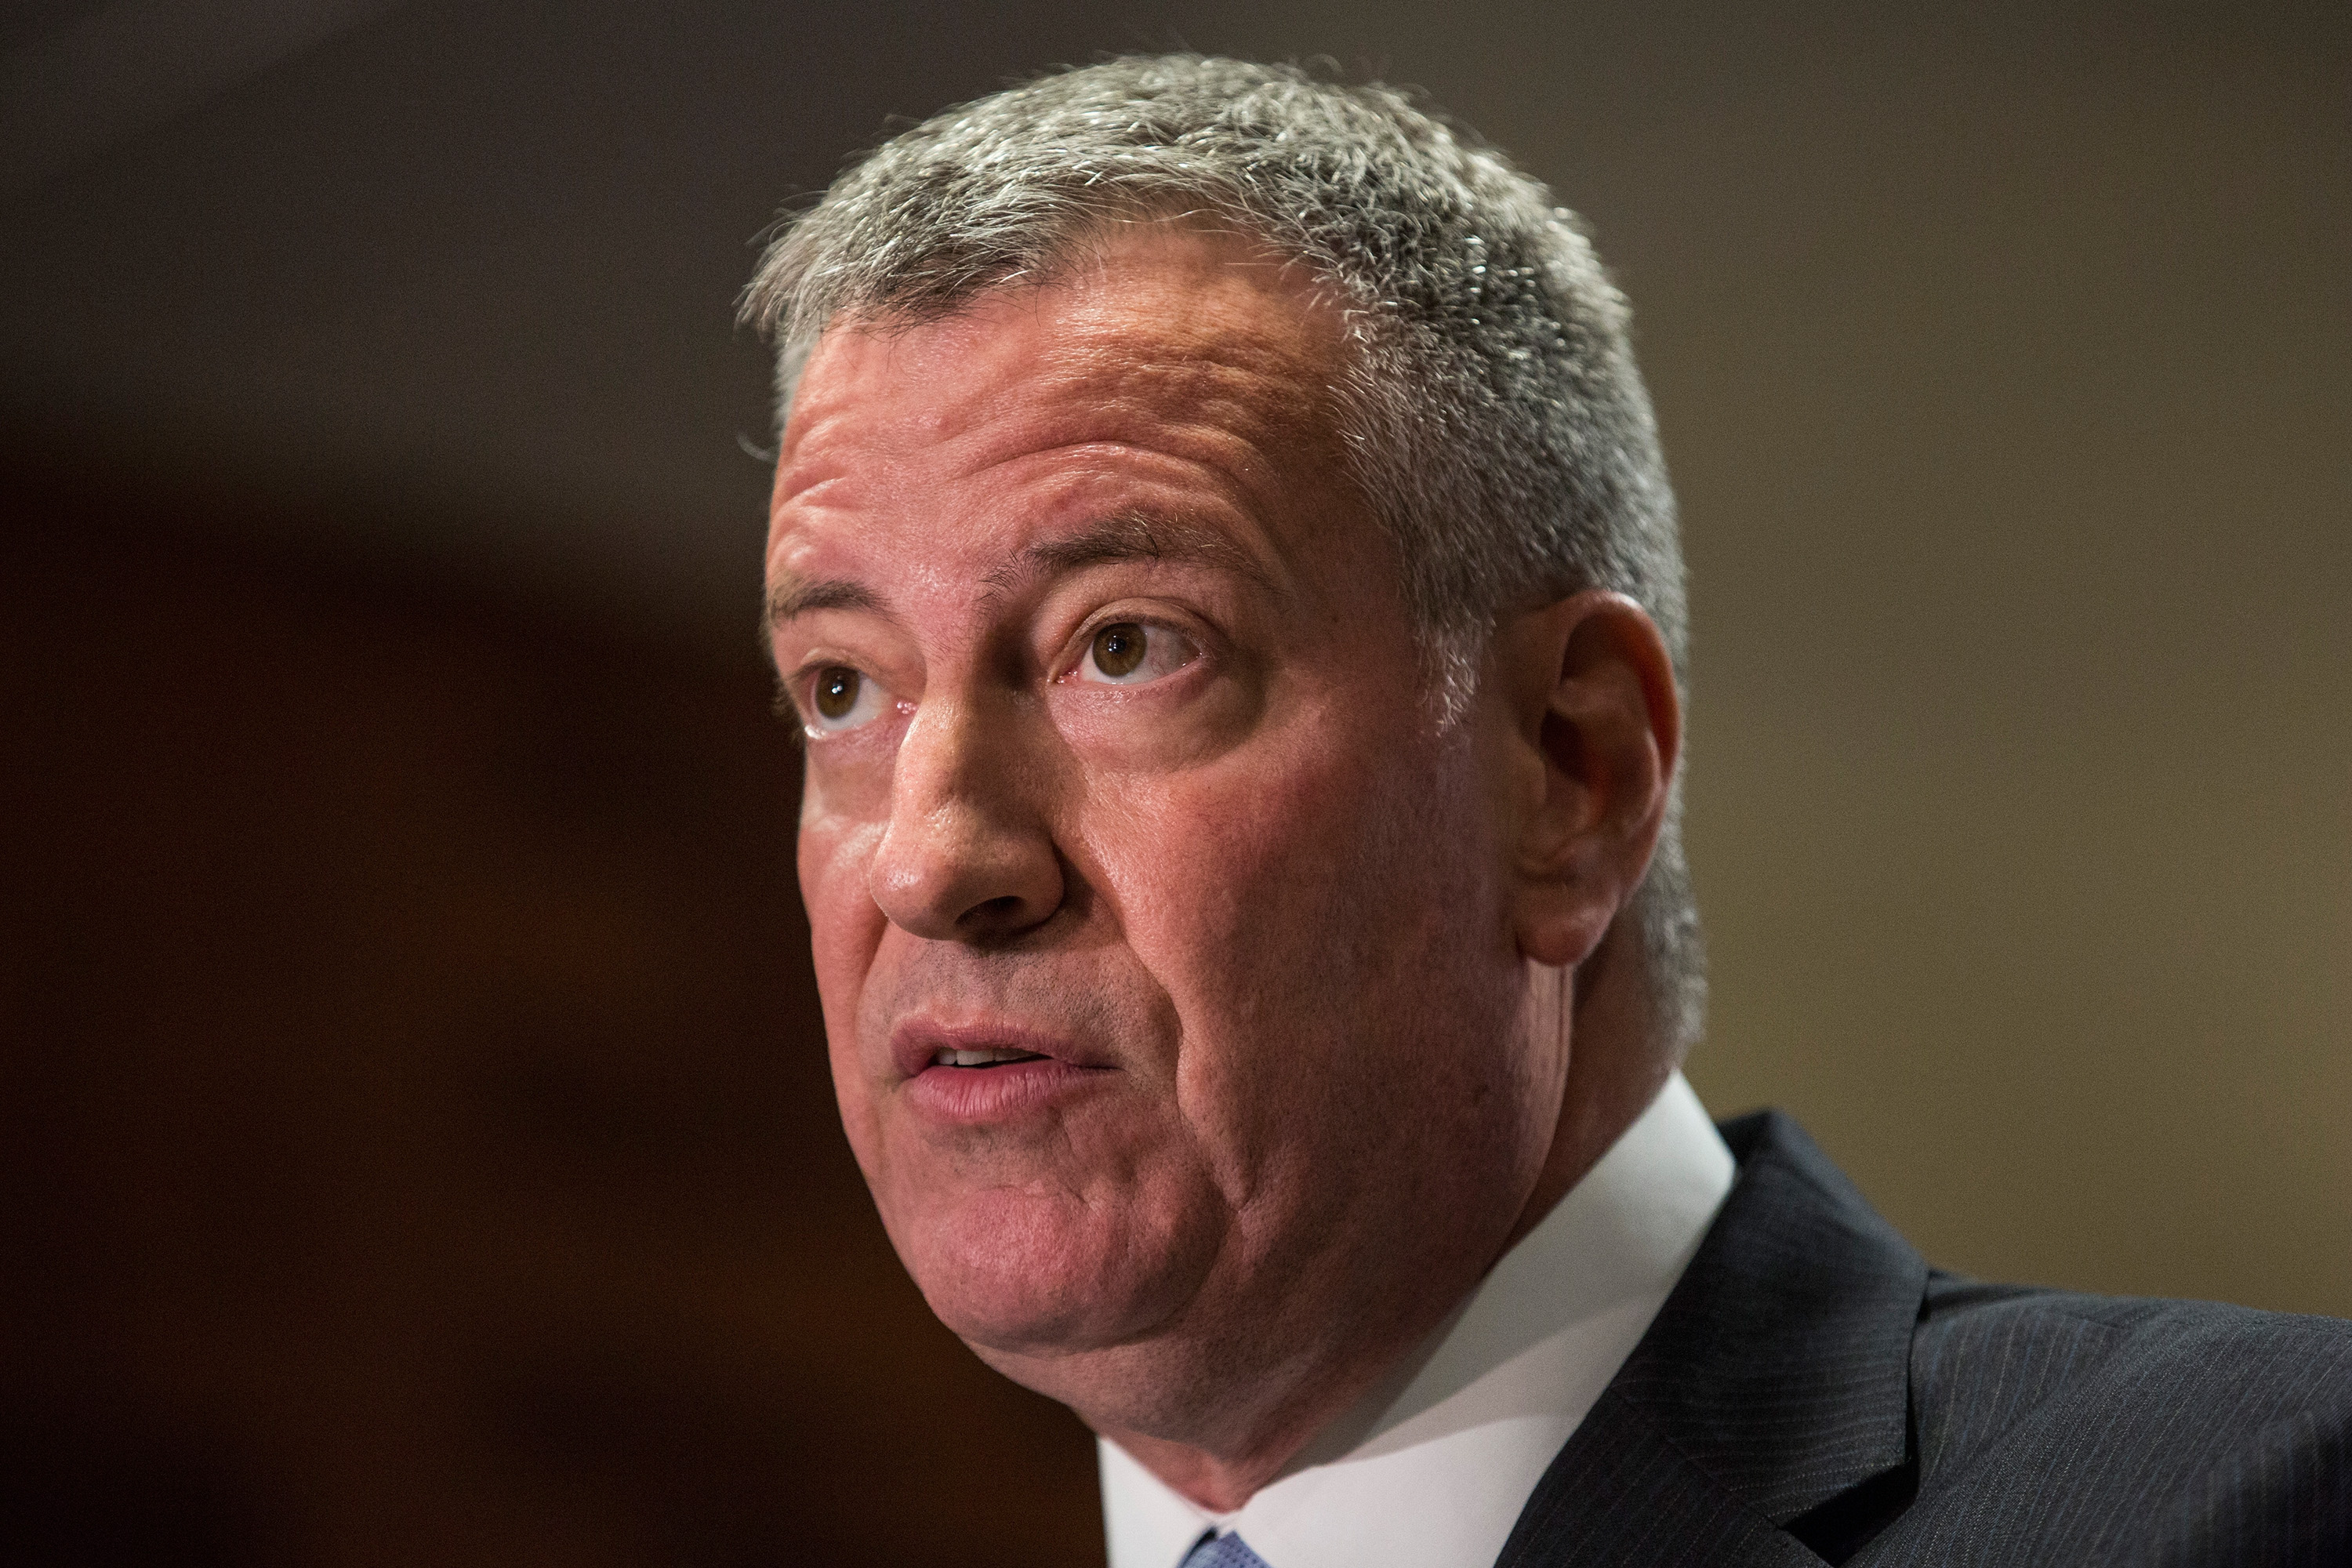 NYC Mayor De Blasio Discusses Legionnaire's Disease Outbreak In The Bronx